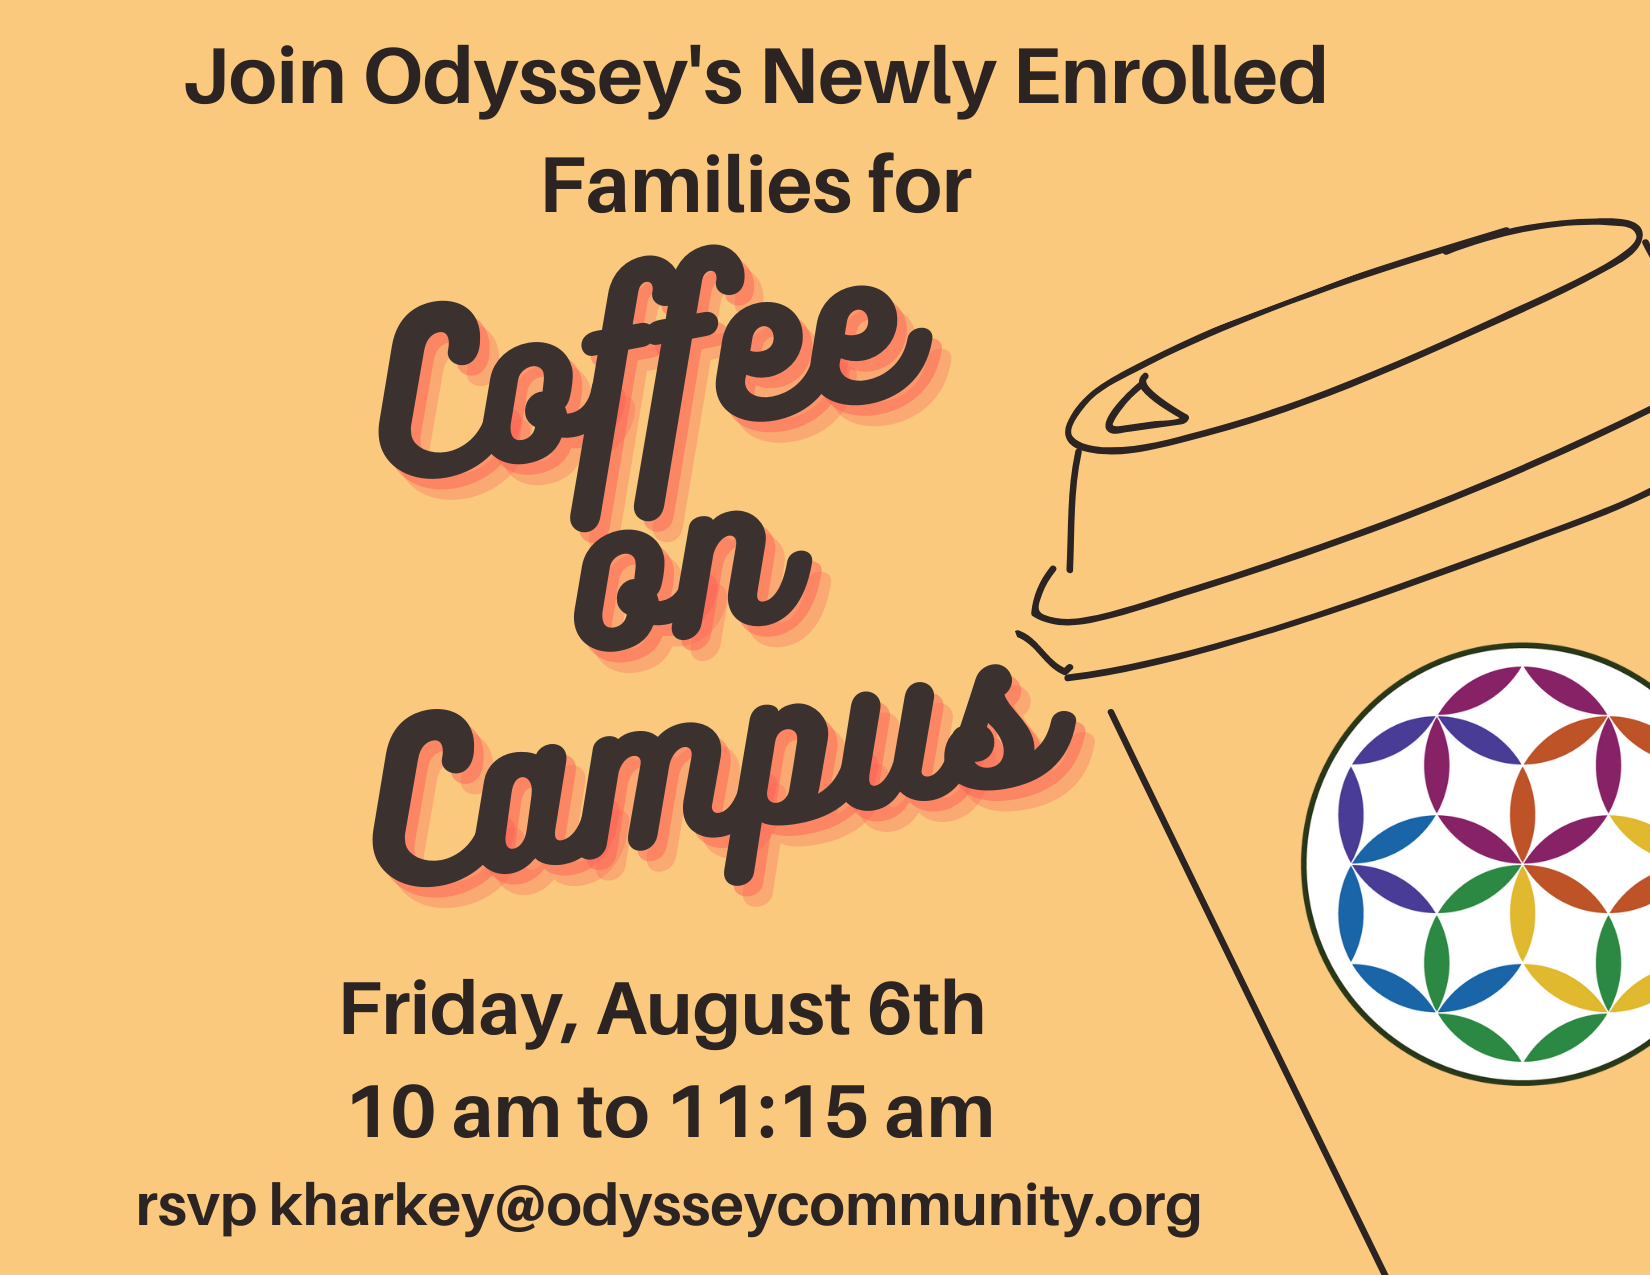 Event for newly enrolled families